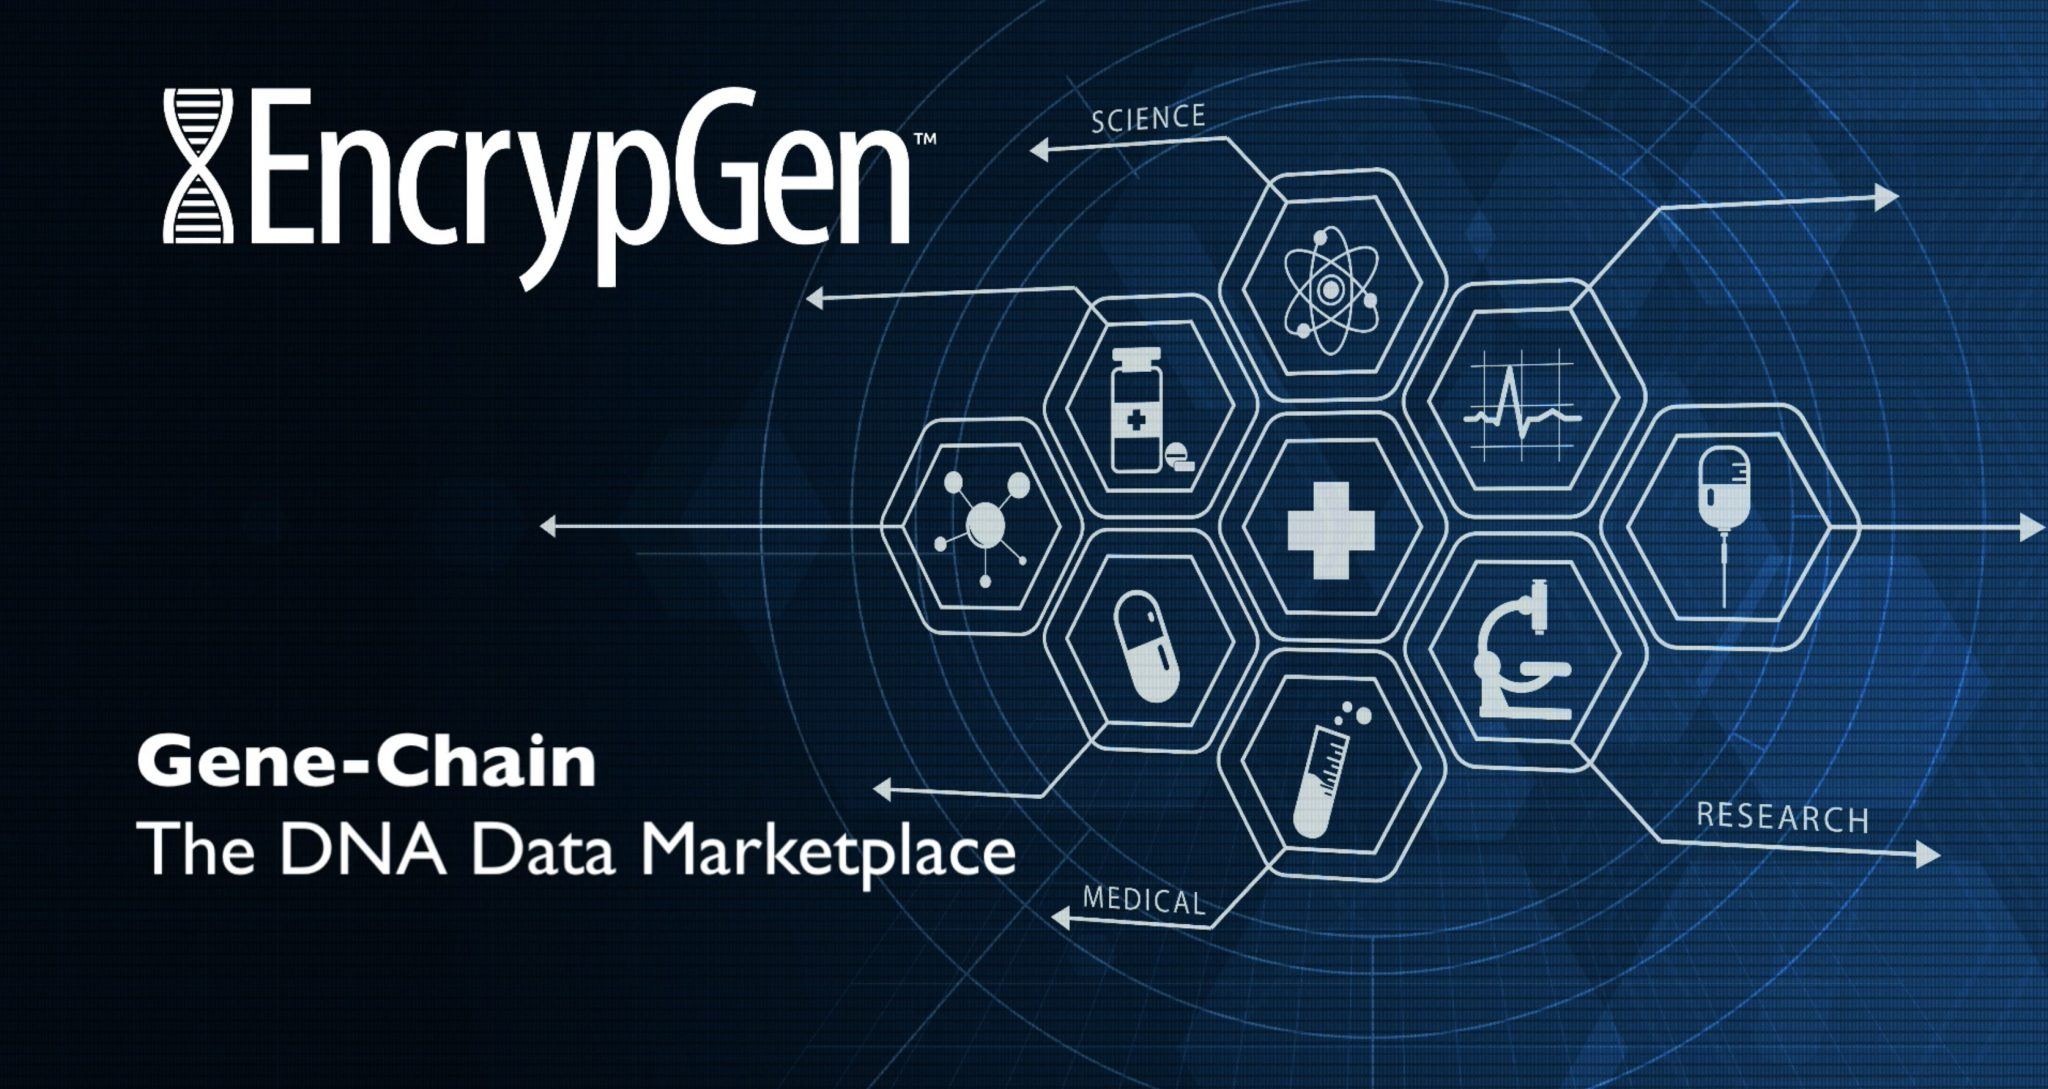 EncrypGen Launches World's First Genomic Data Marketplace